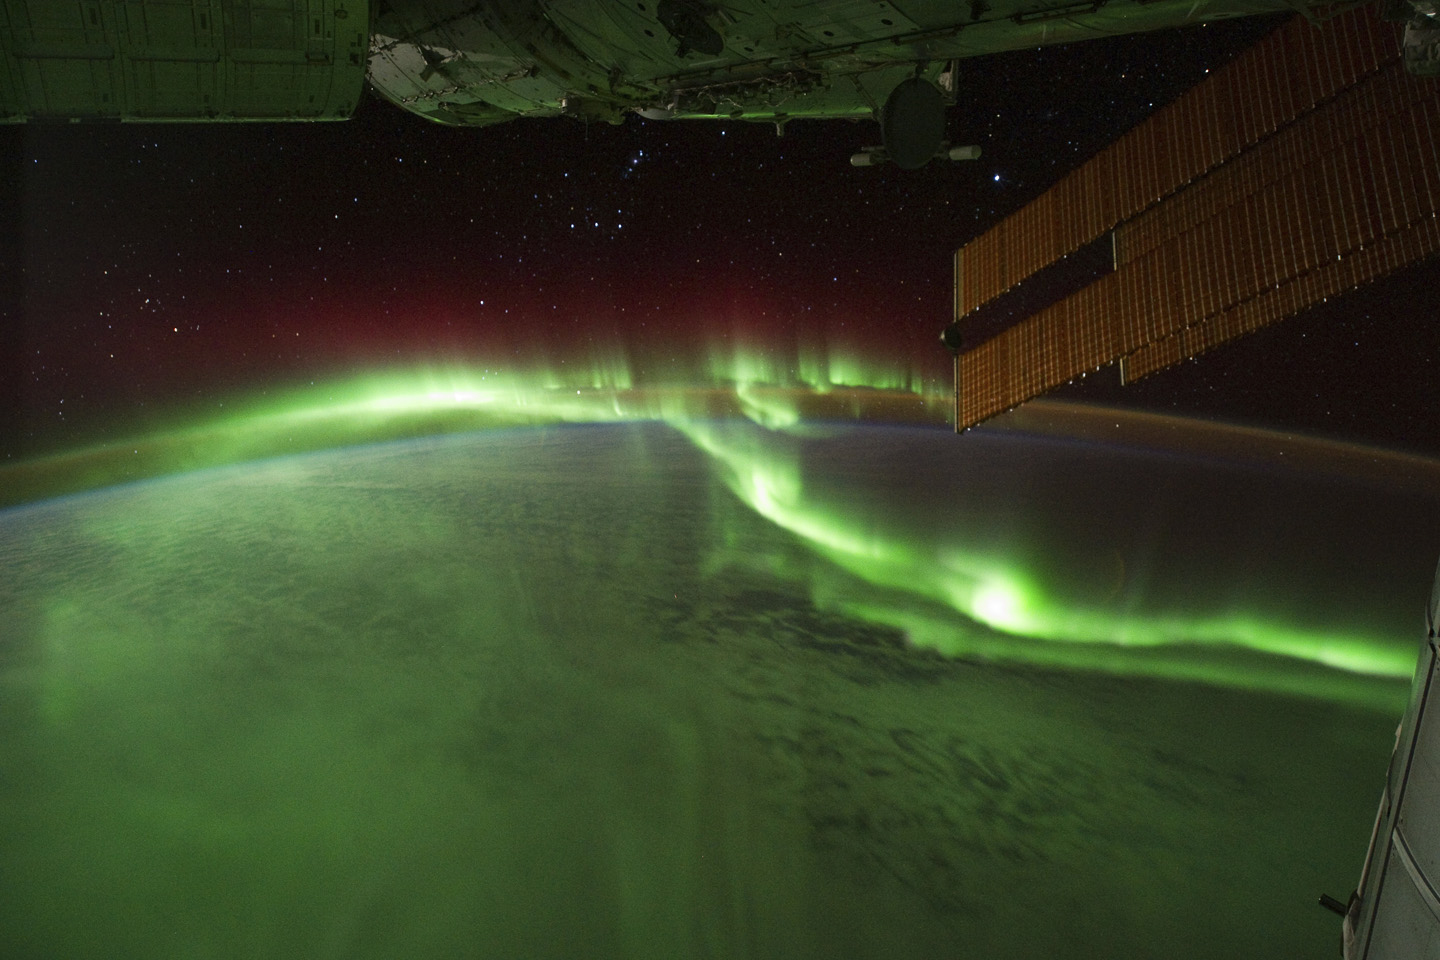 Aurora Australis or Southern Lights